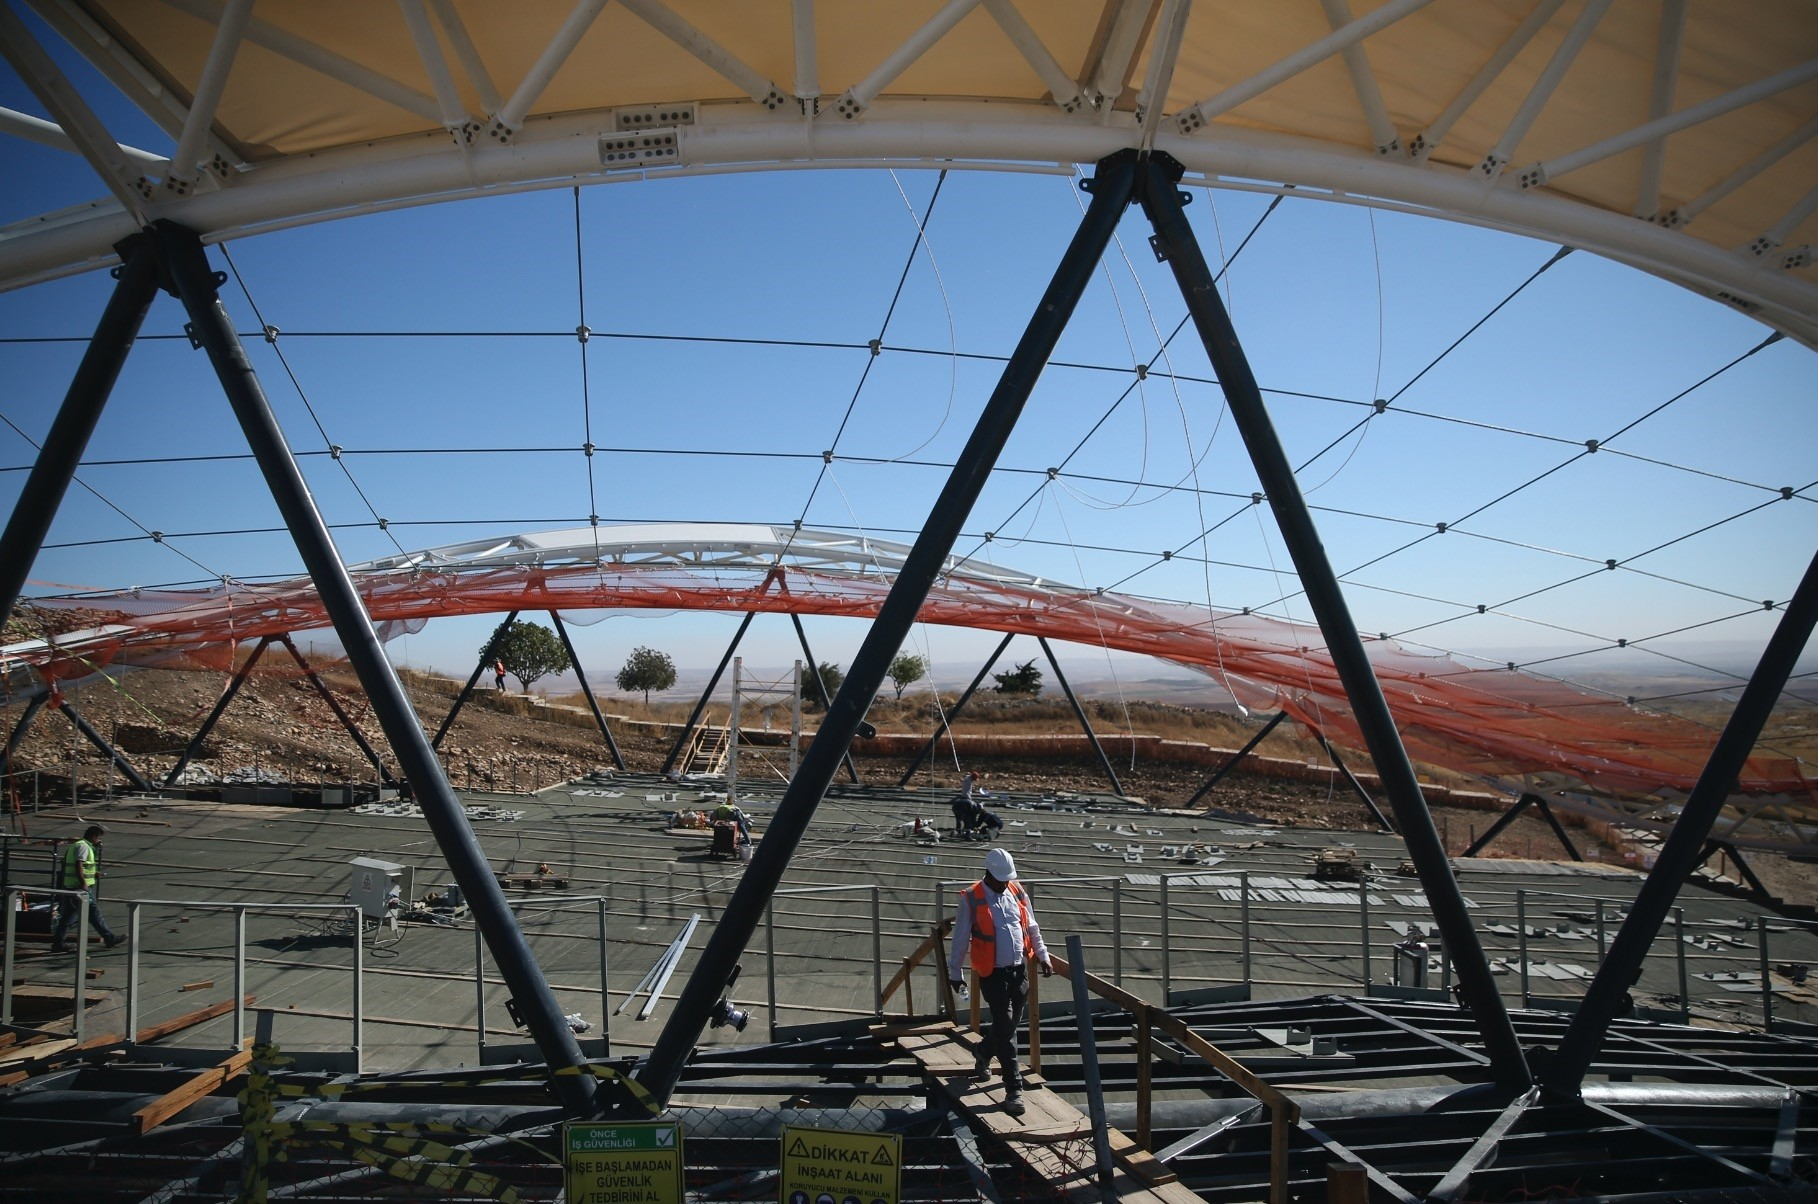 The site has been temporarily closed to visitors due to roof construction.